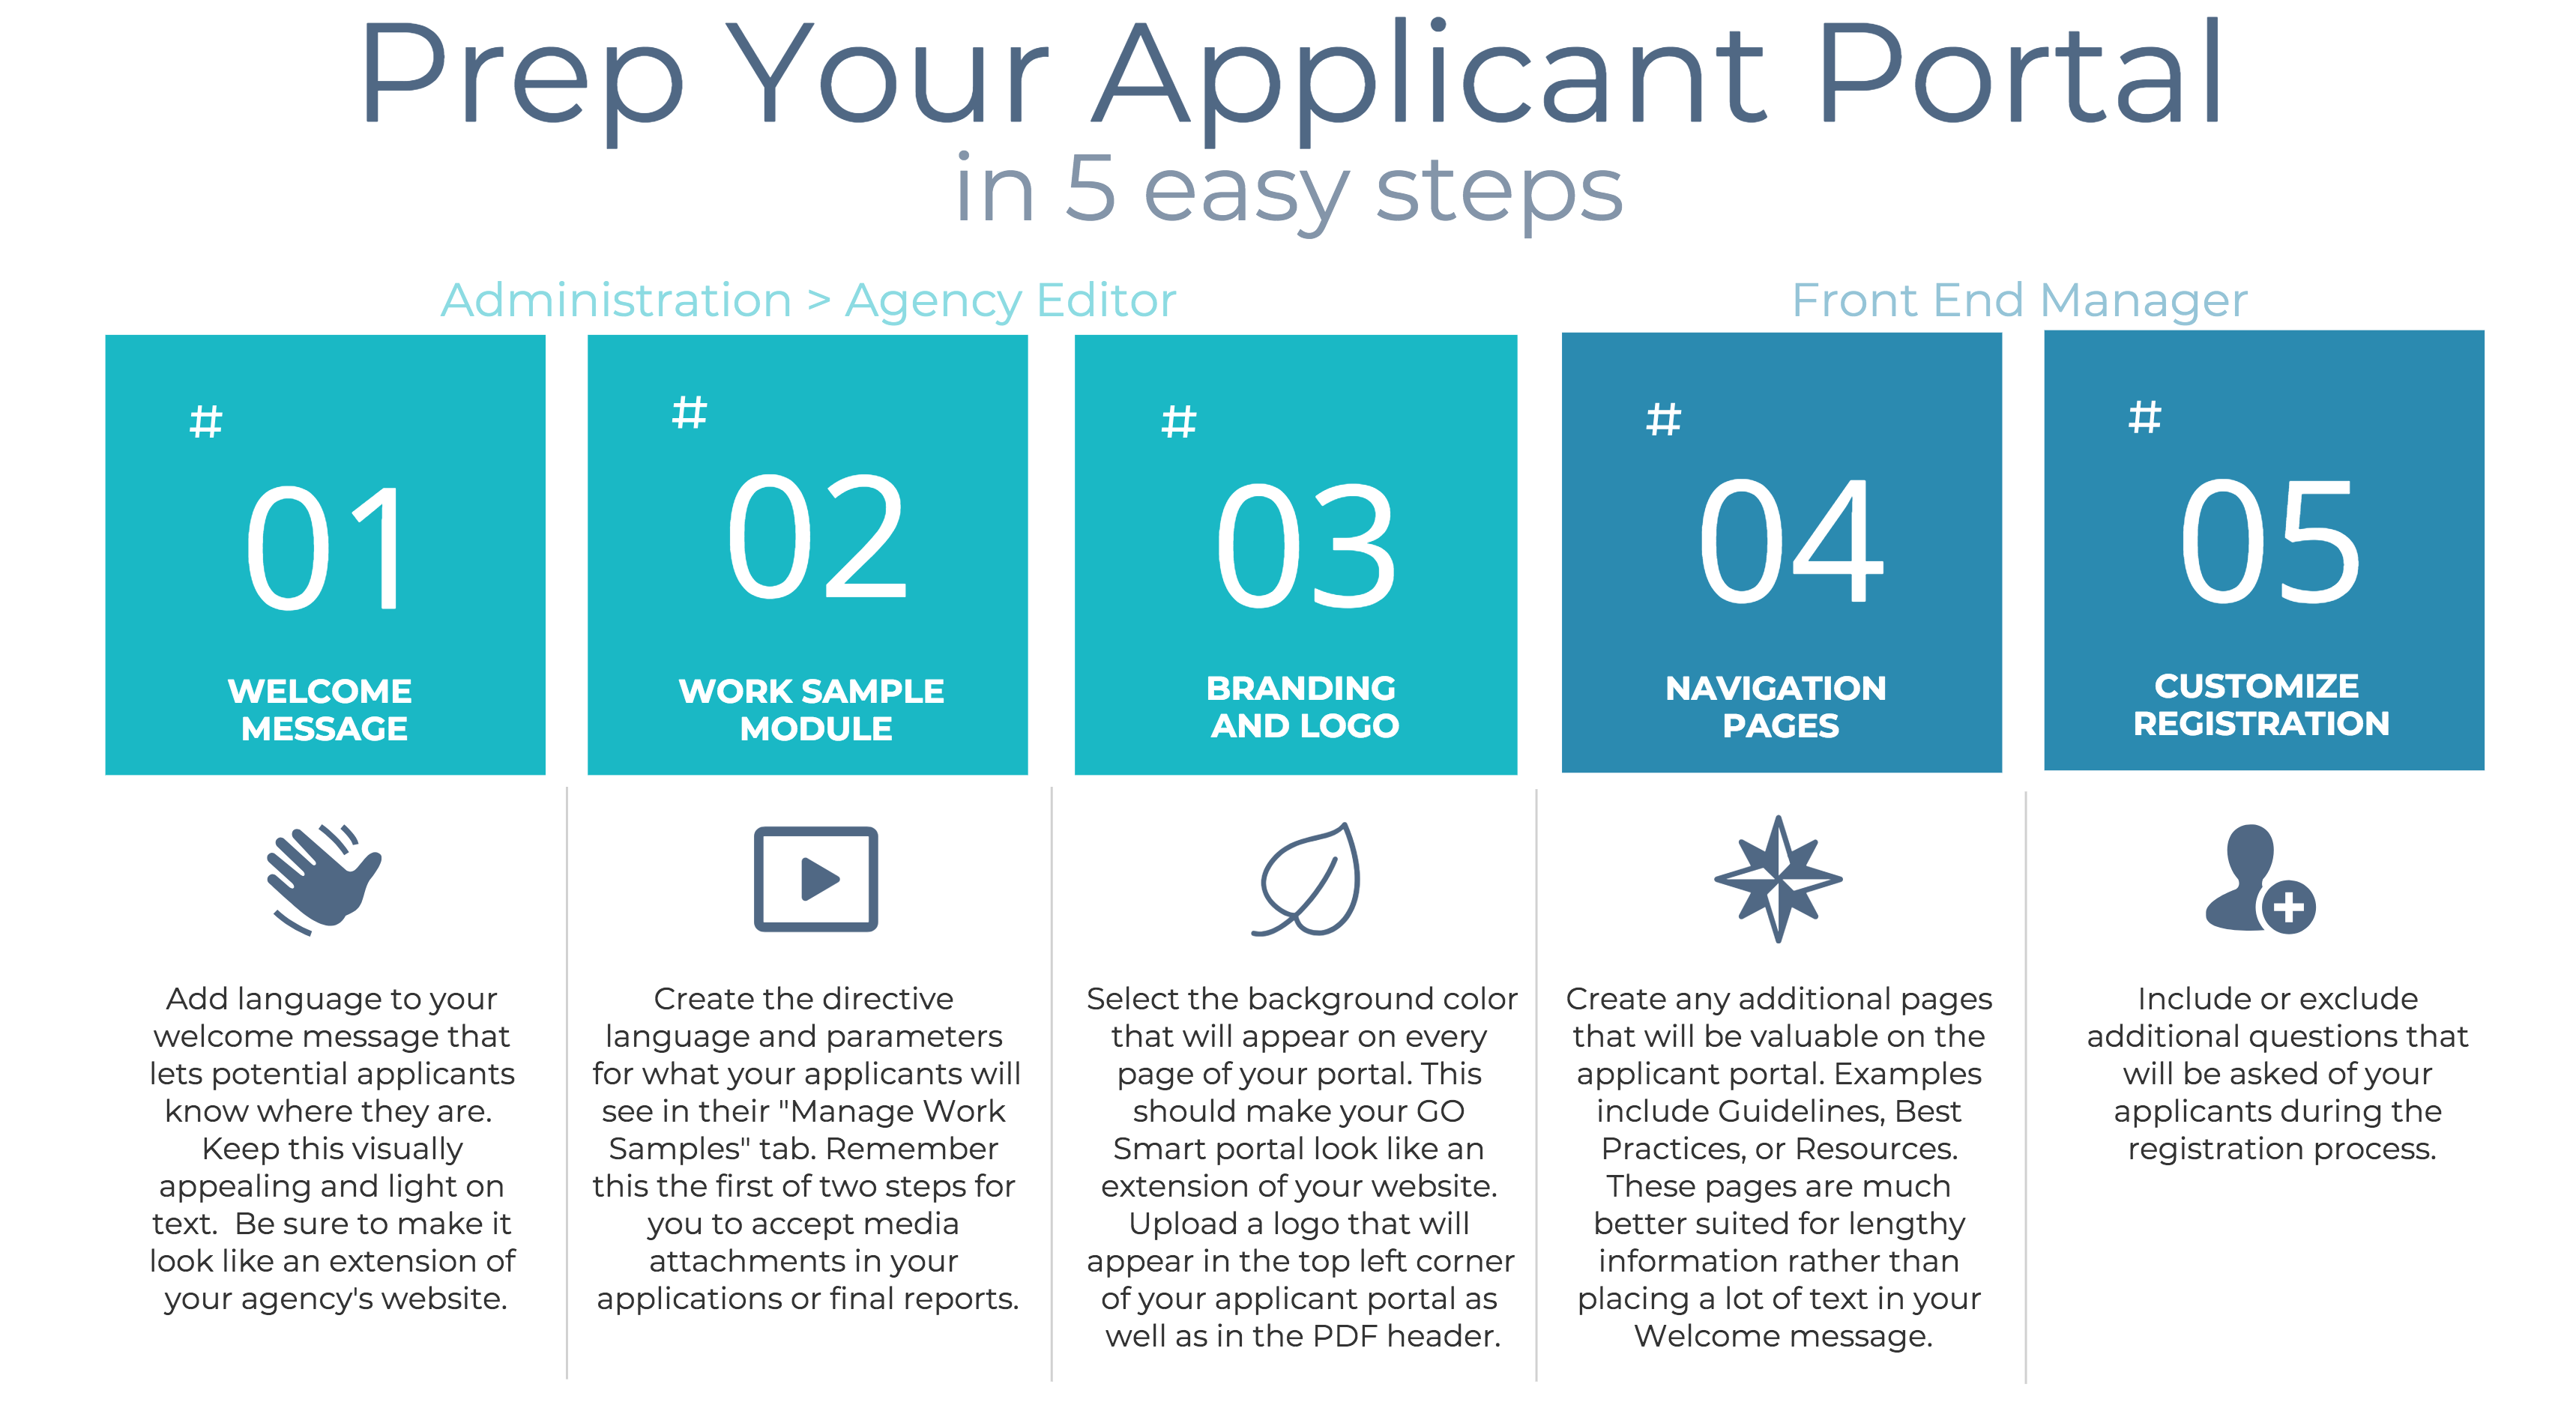 Prep your applicant portal in these 5 steps: Welcome Message, Work Sample Module, Background Color and Logo, Navigation Pages, Customize Registration